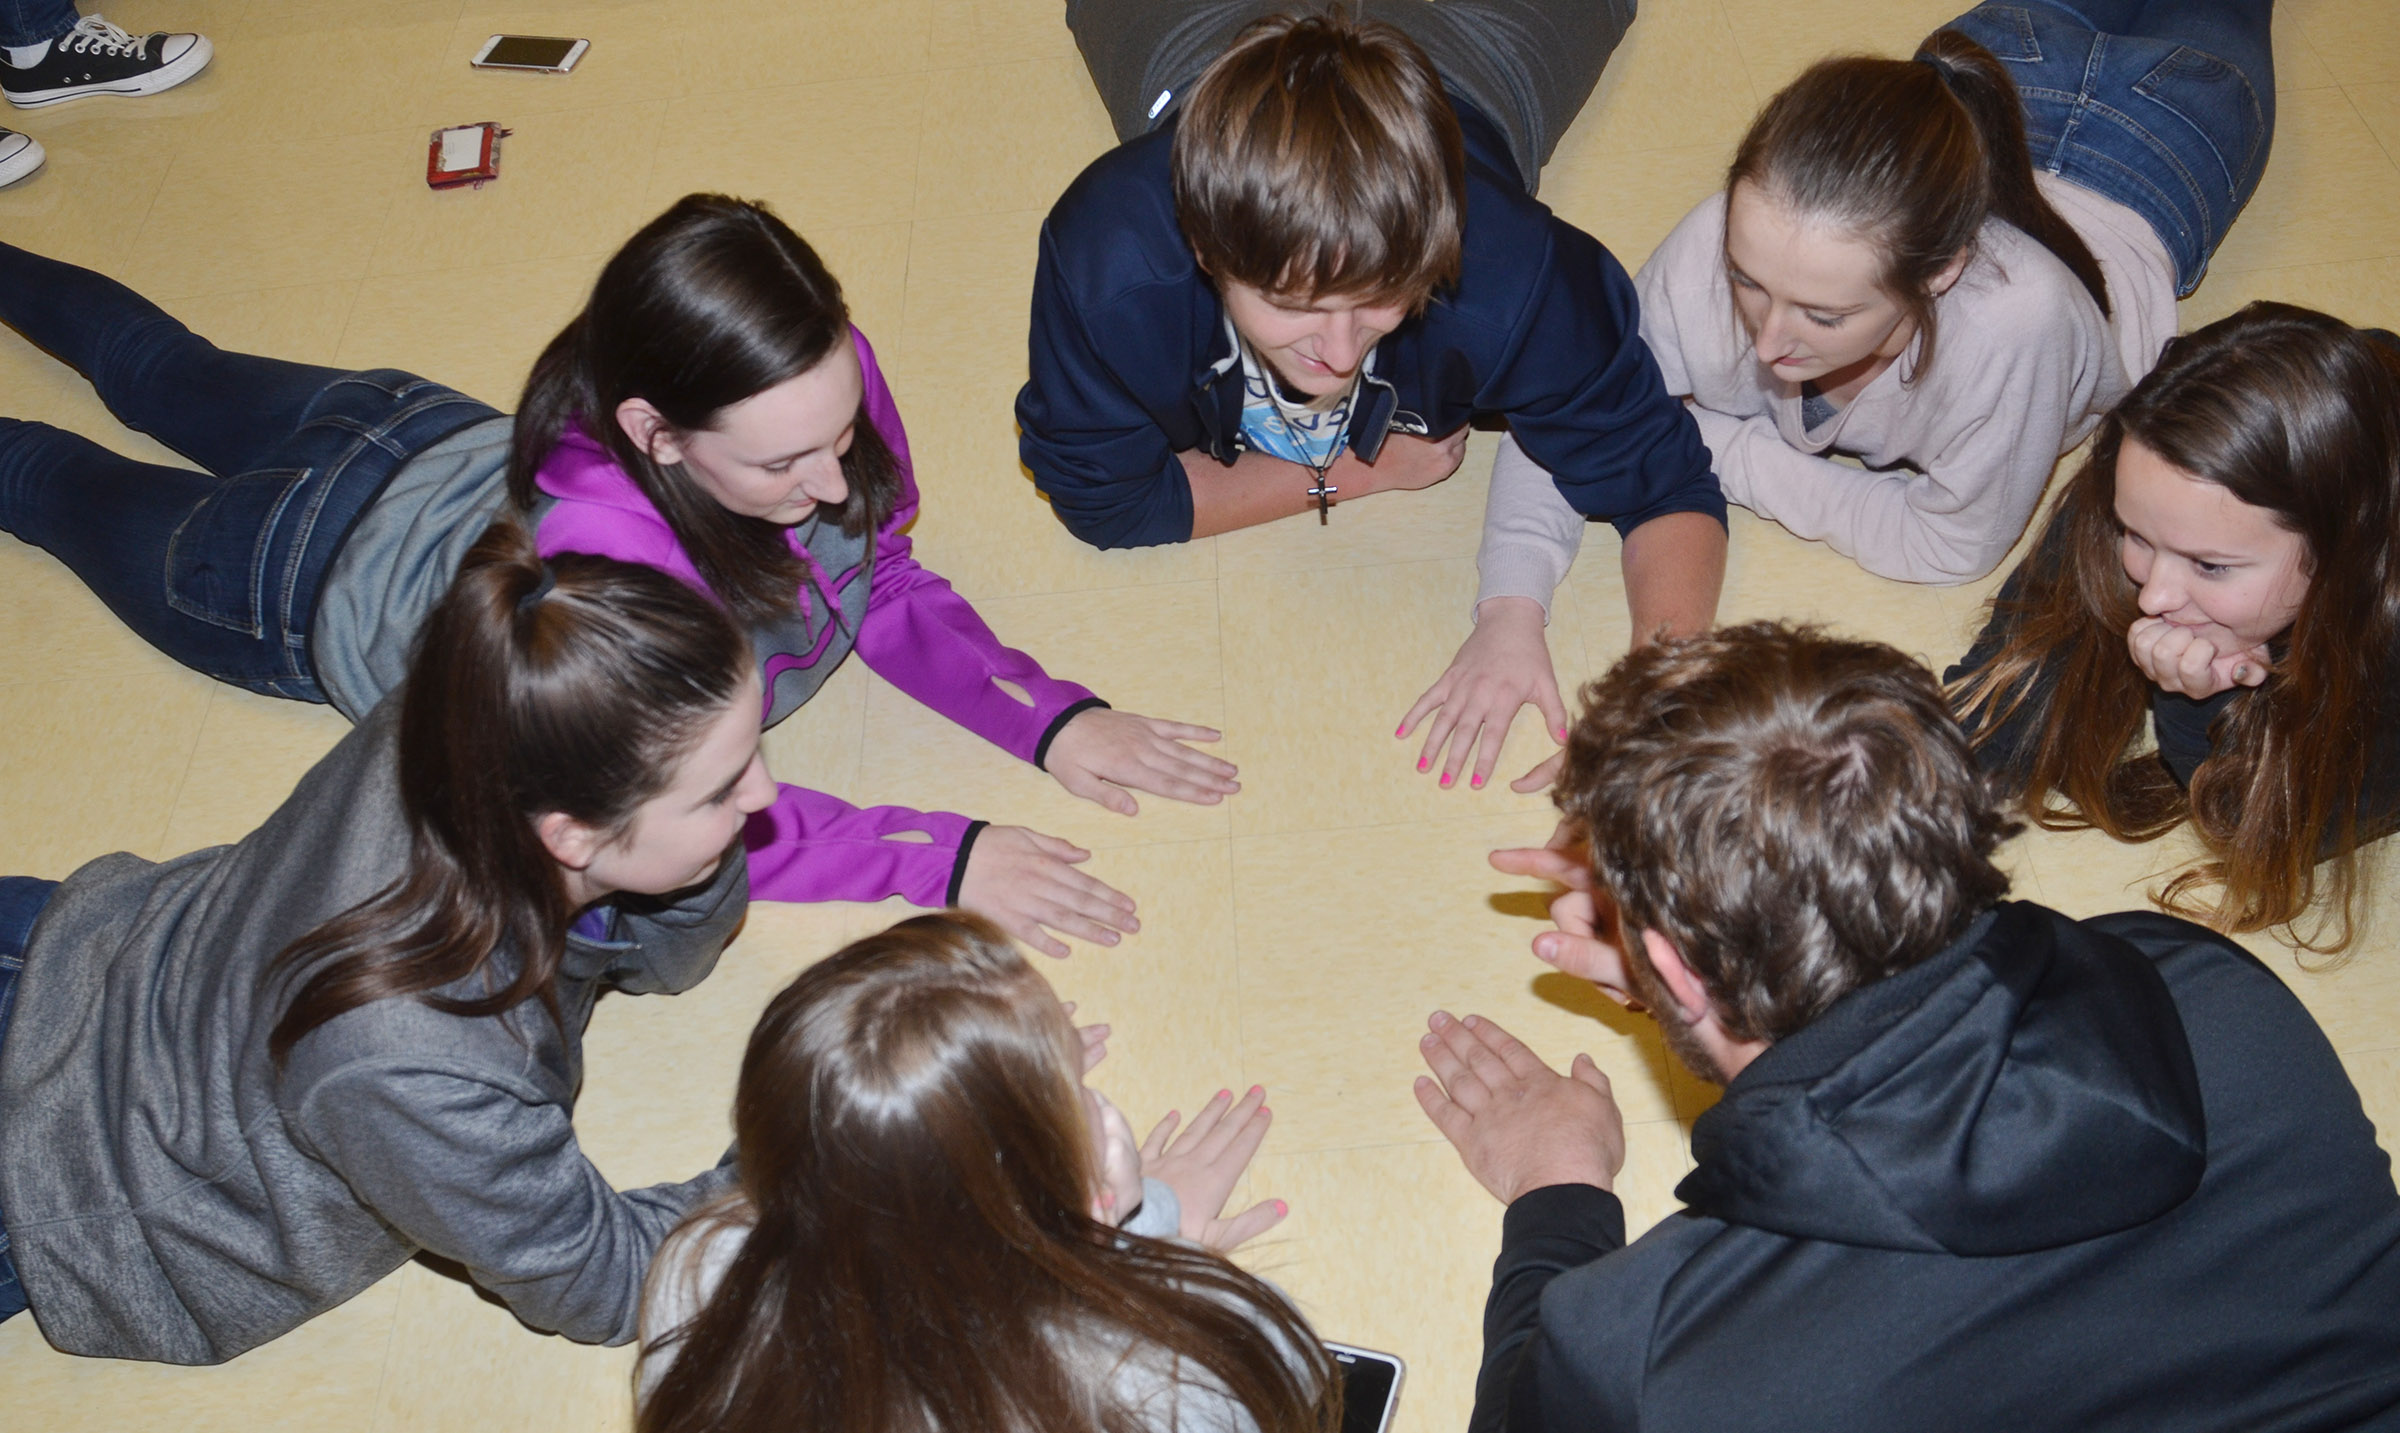 CHS FCA members, clockwise from left, sophomores Sydney Wilson and Zoe McAninch, juniors Myles Murrell, Samantha Mason, Christa Riggs and Lane Bottoms and sophomore Kaleigh Hunt play a concentration icebreaker game.